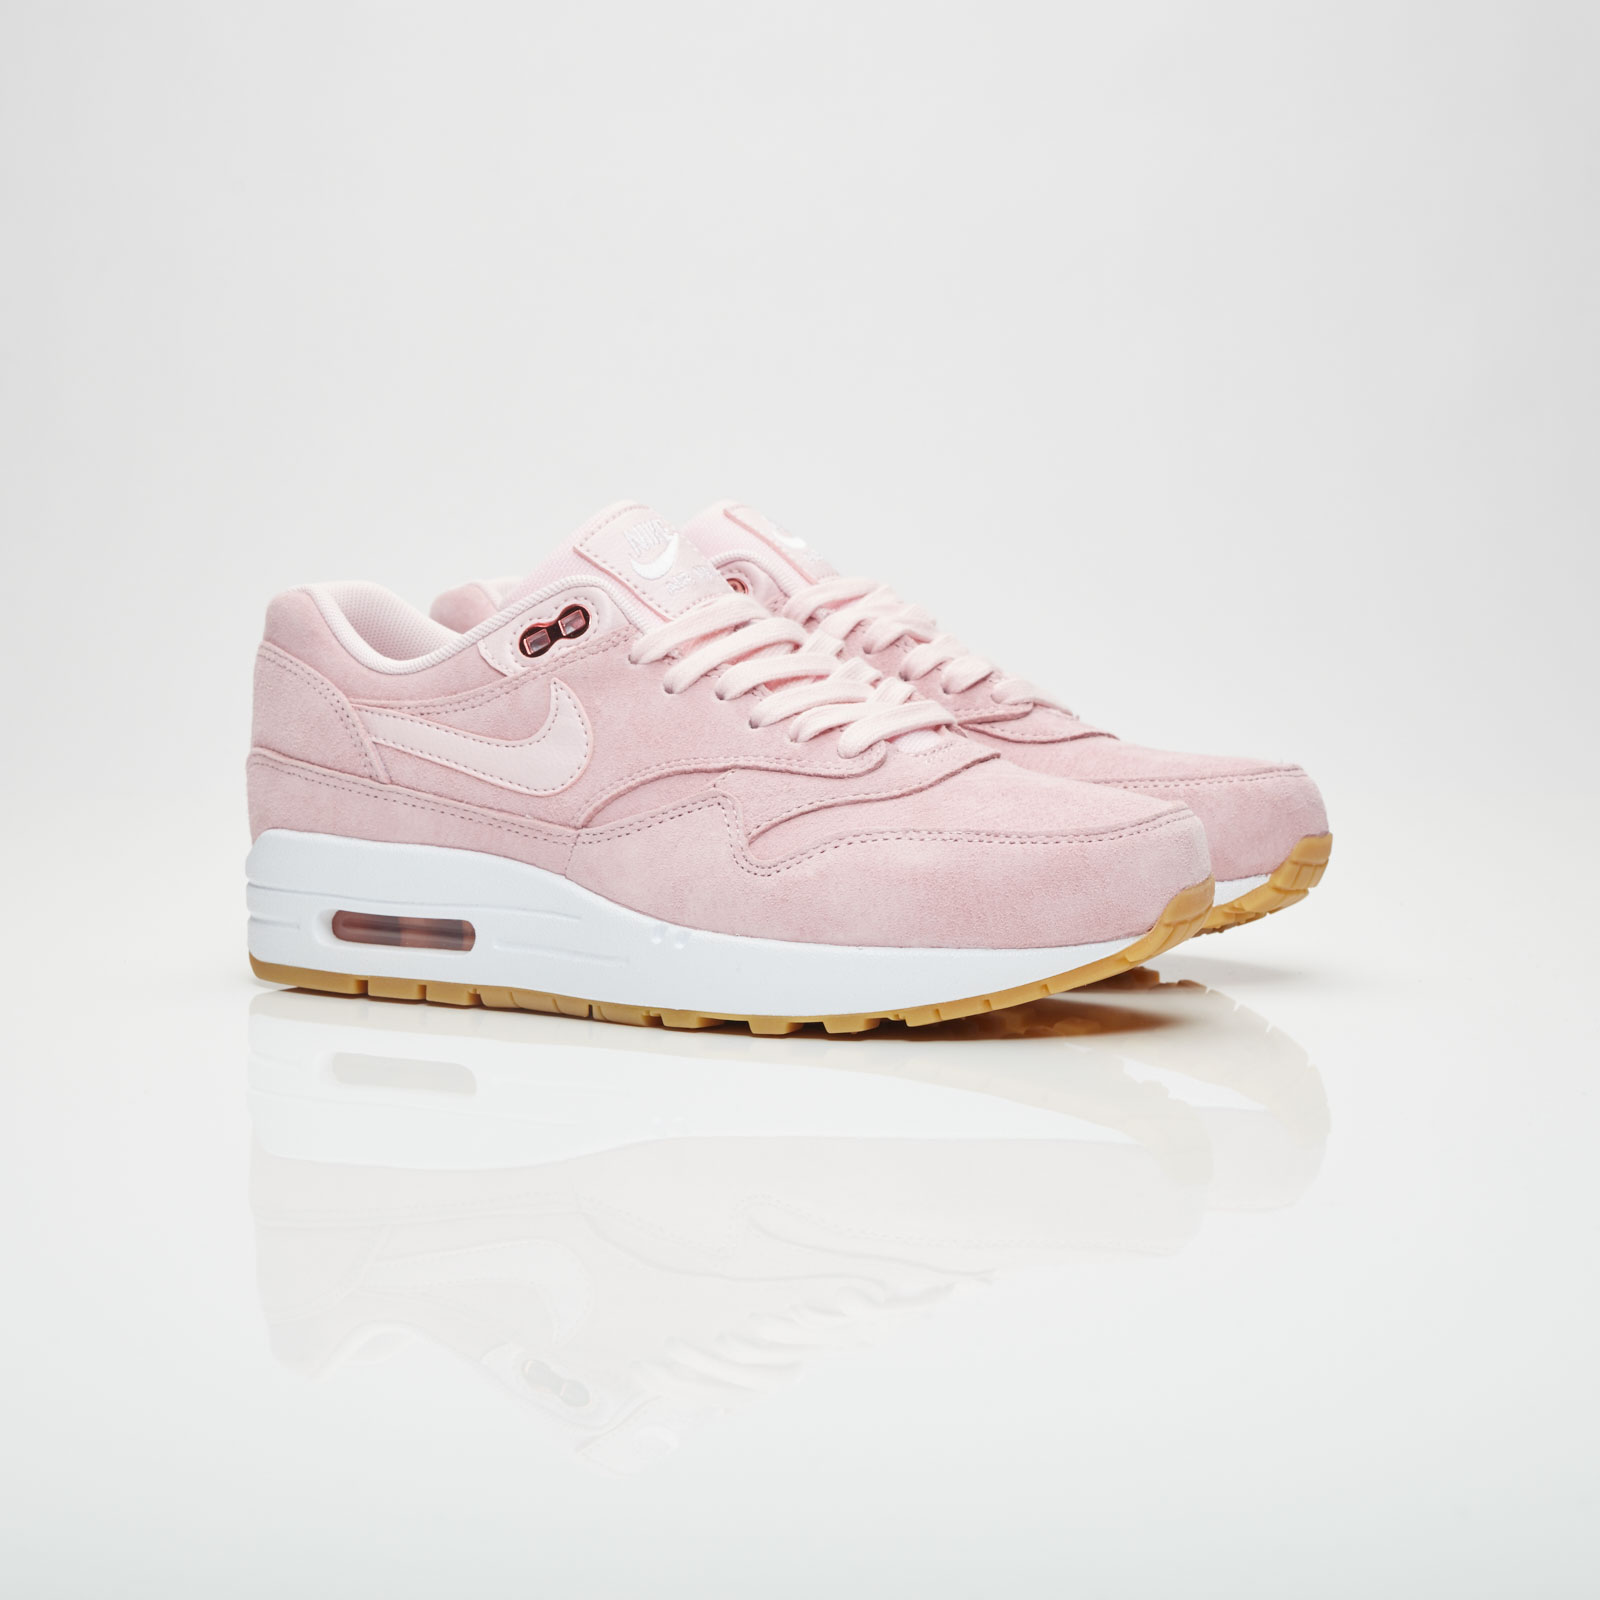 601c2a8b161 Nike Wmns Air Max 1 SD - 919484-600 - Sneakersnstuff | sneakers ...